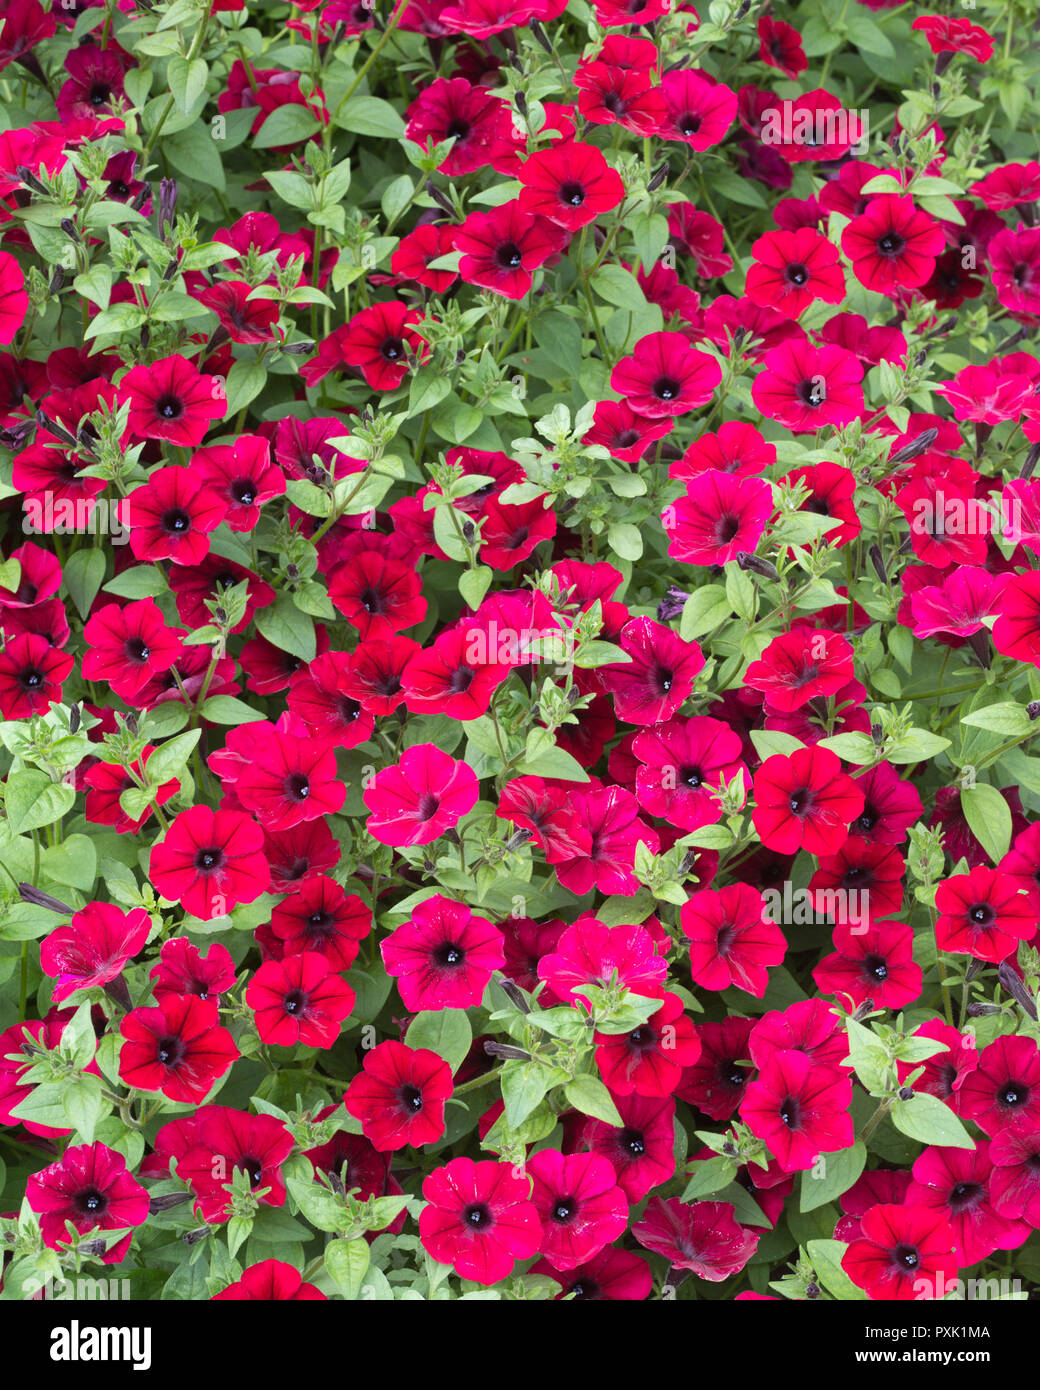 'Tidal Wave Red Velour' Petunia (Petunia x hybrida) flowers in display garden at Agriculture building on University of Saskatchewan campus - Stock Image